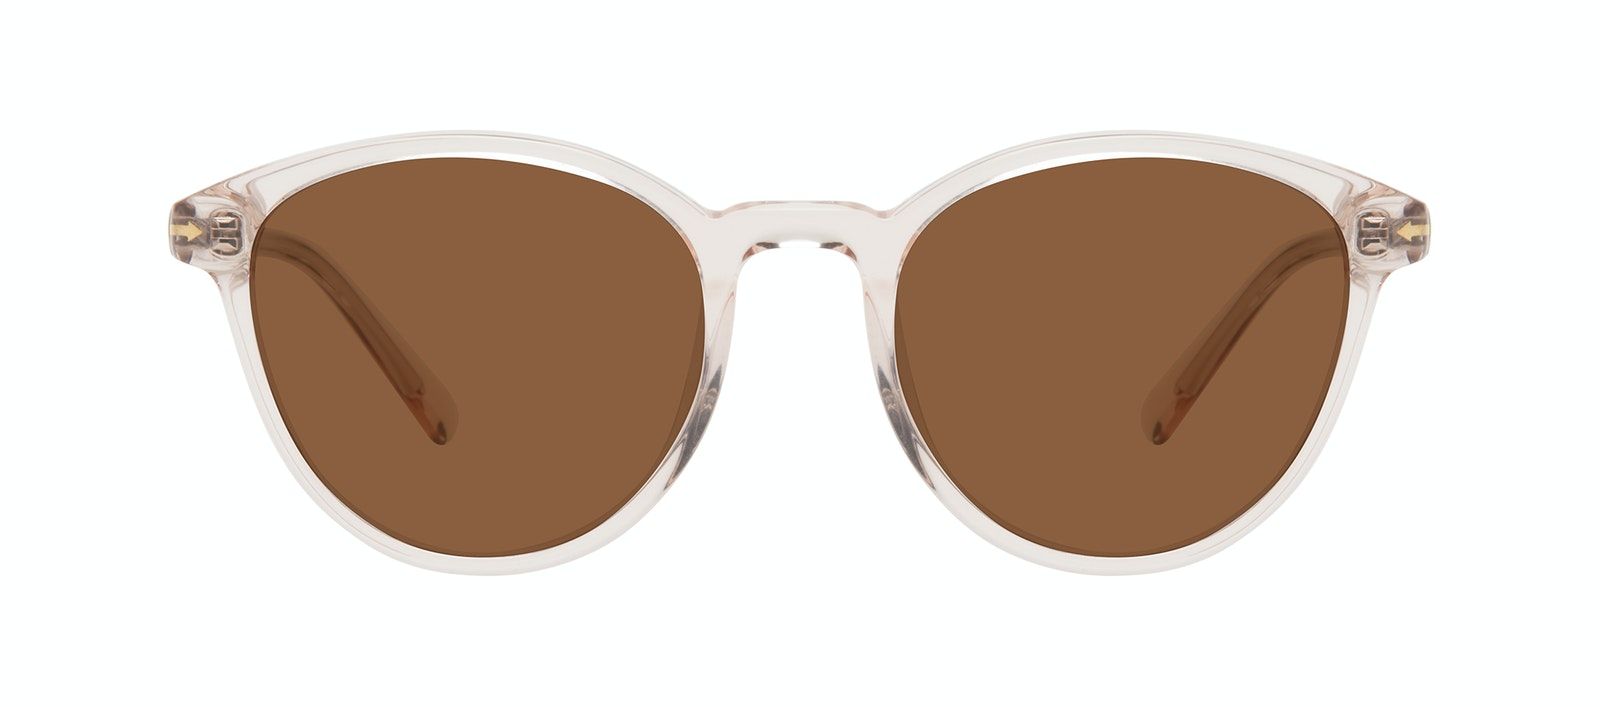 Affordable Fashion Glasses Round Sunglasses Women London Vanilla Front